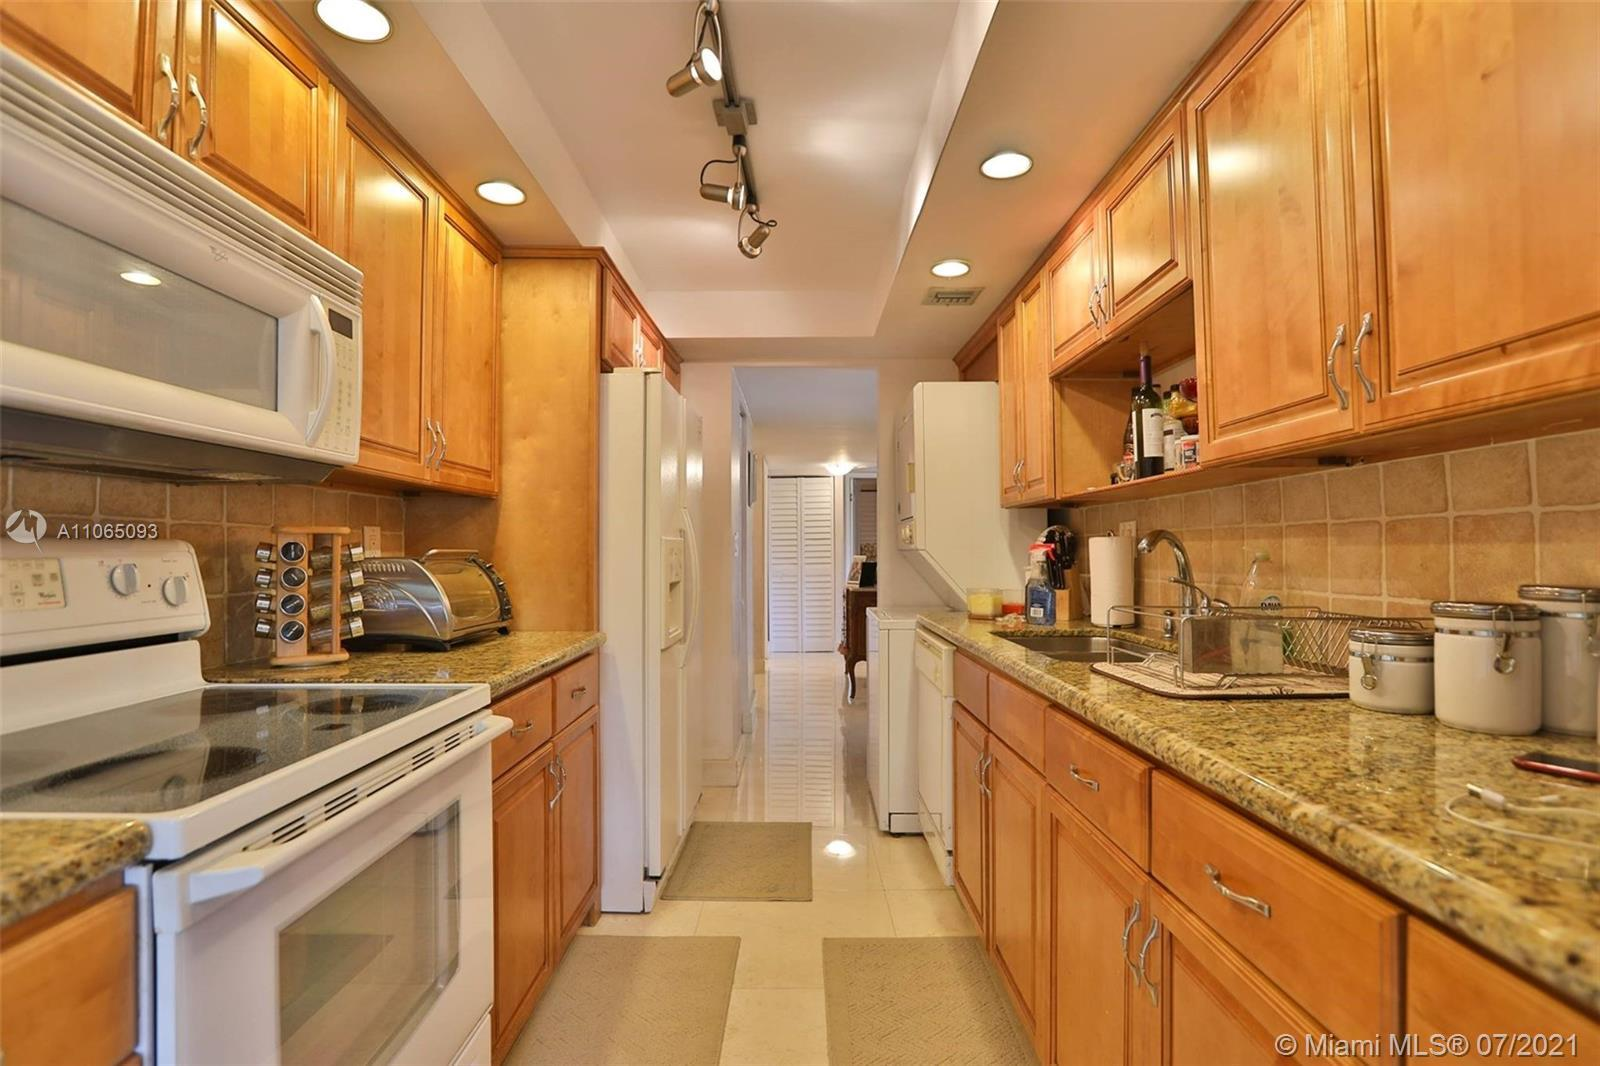 STUNNING CORNER UNIT. Very spacious (2 bed + 2 baths + eat-in breakfast/office area). One of the bes